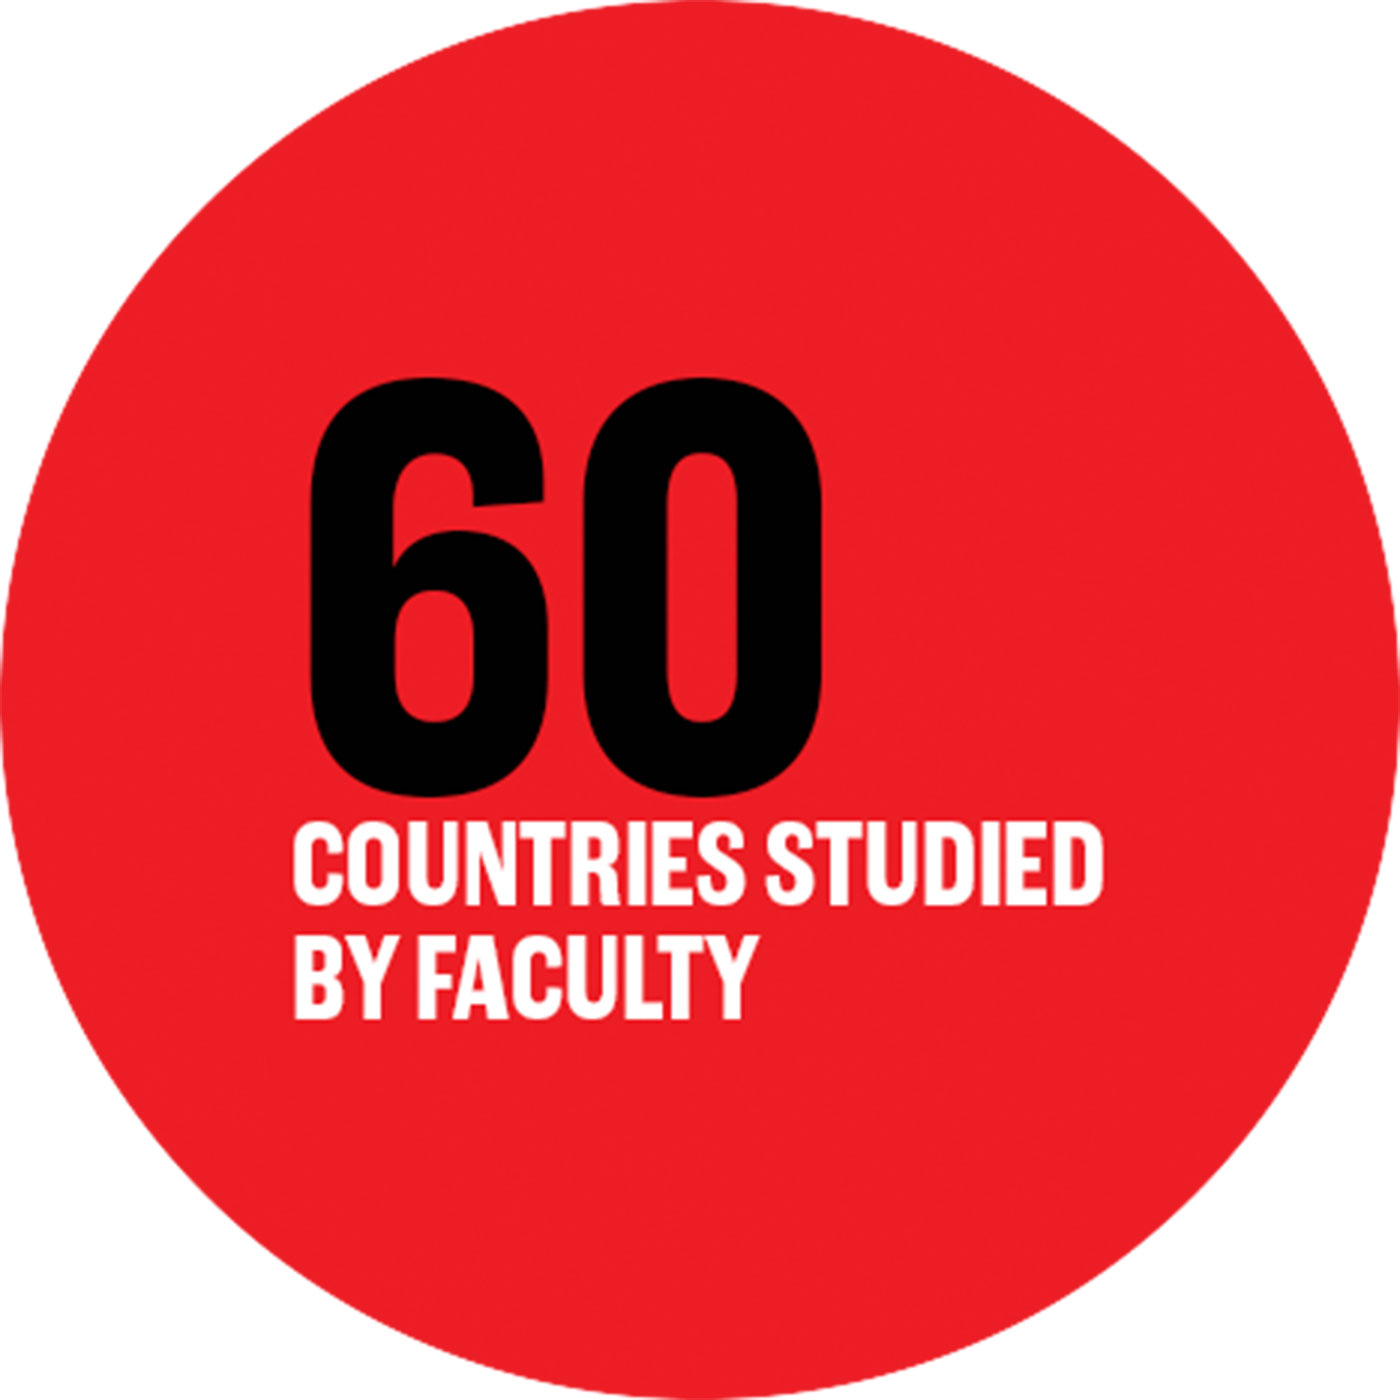 60 countries studied by faculty